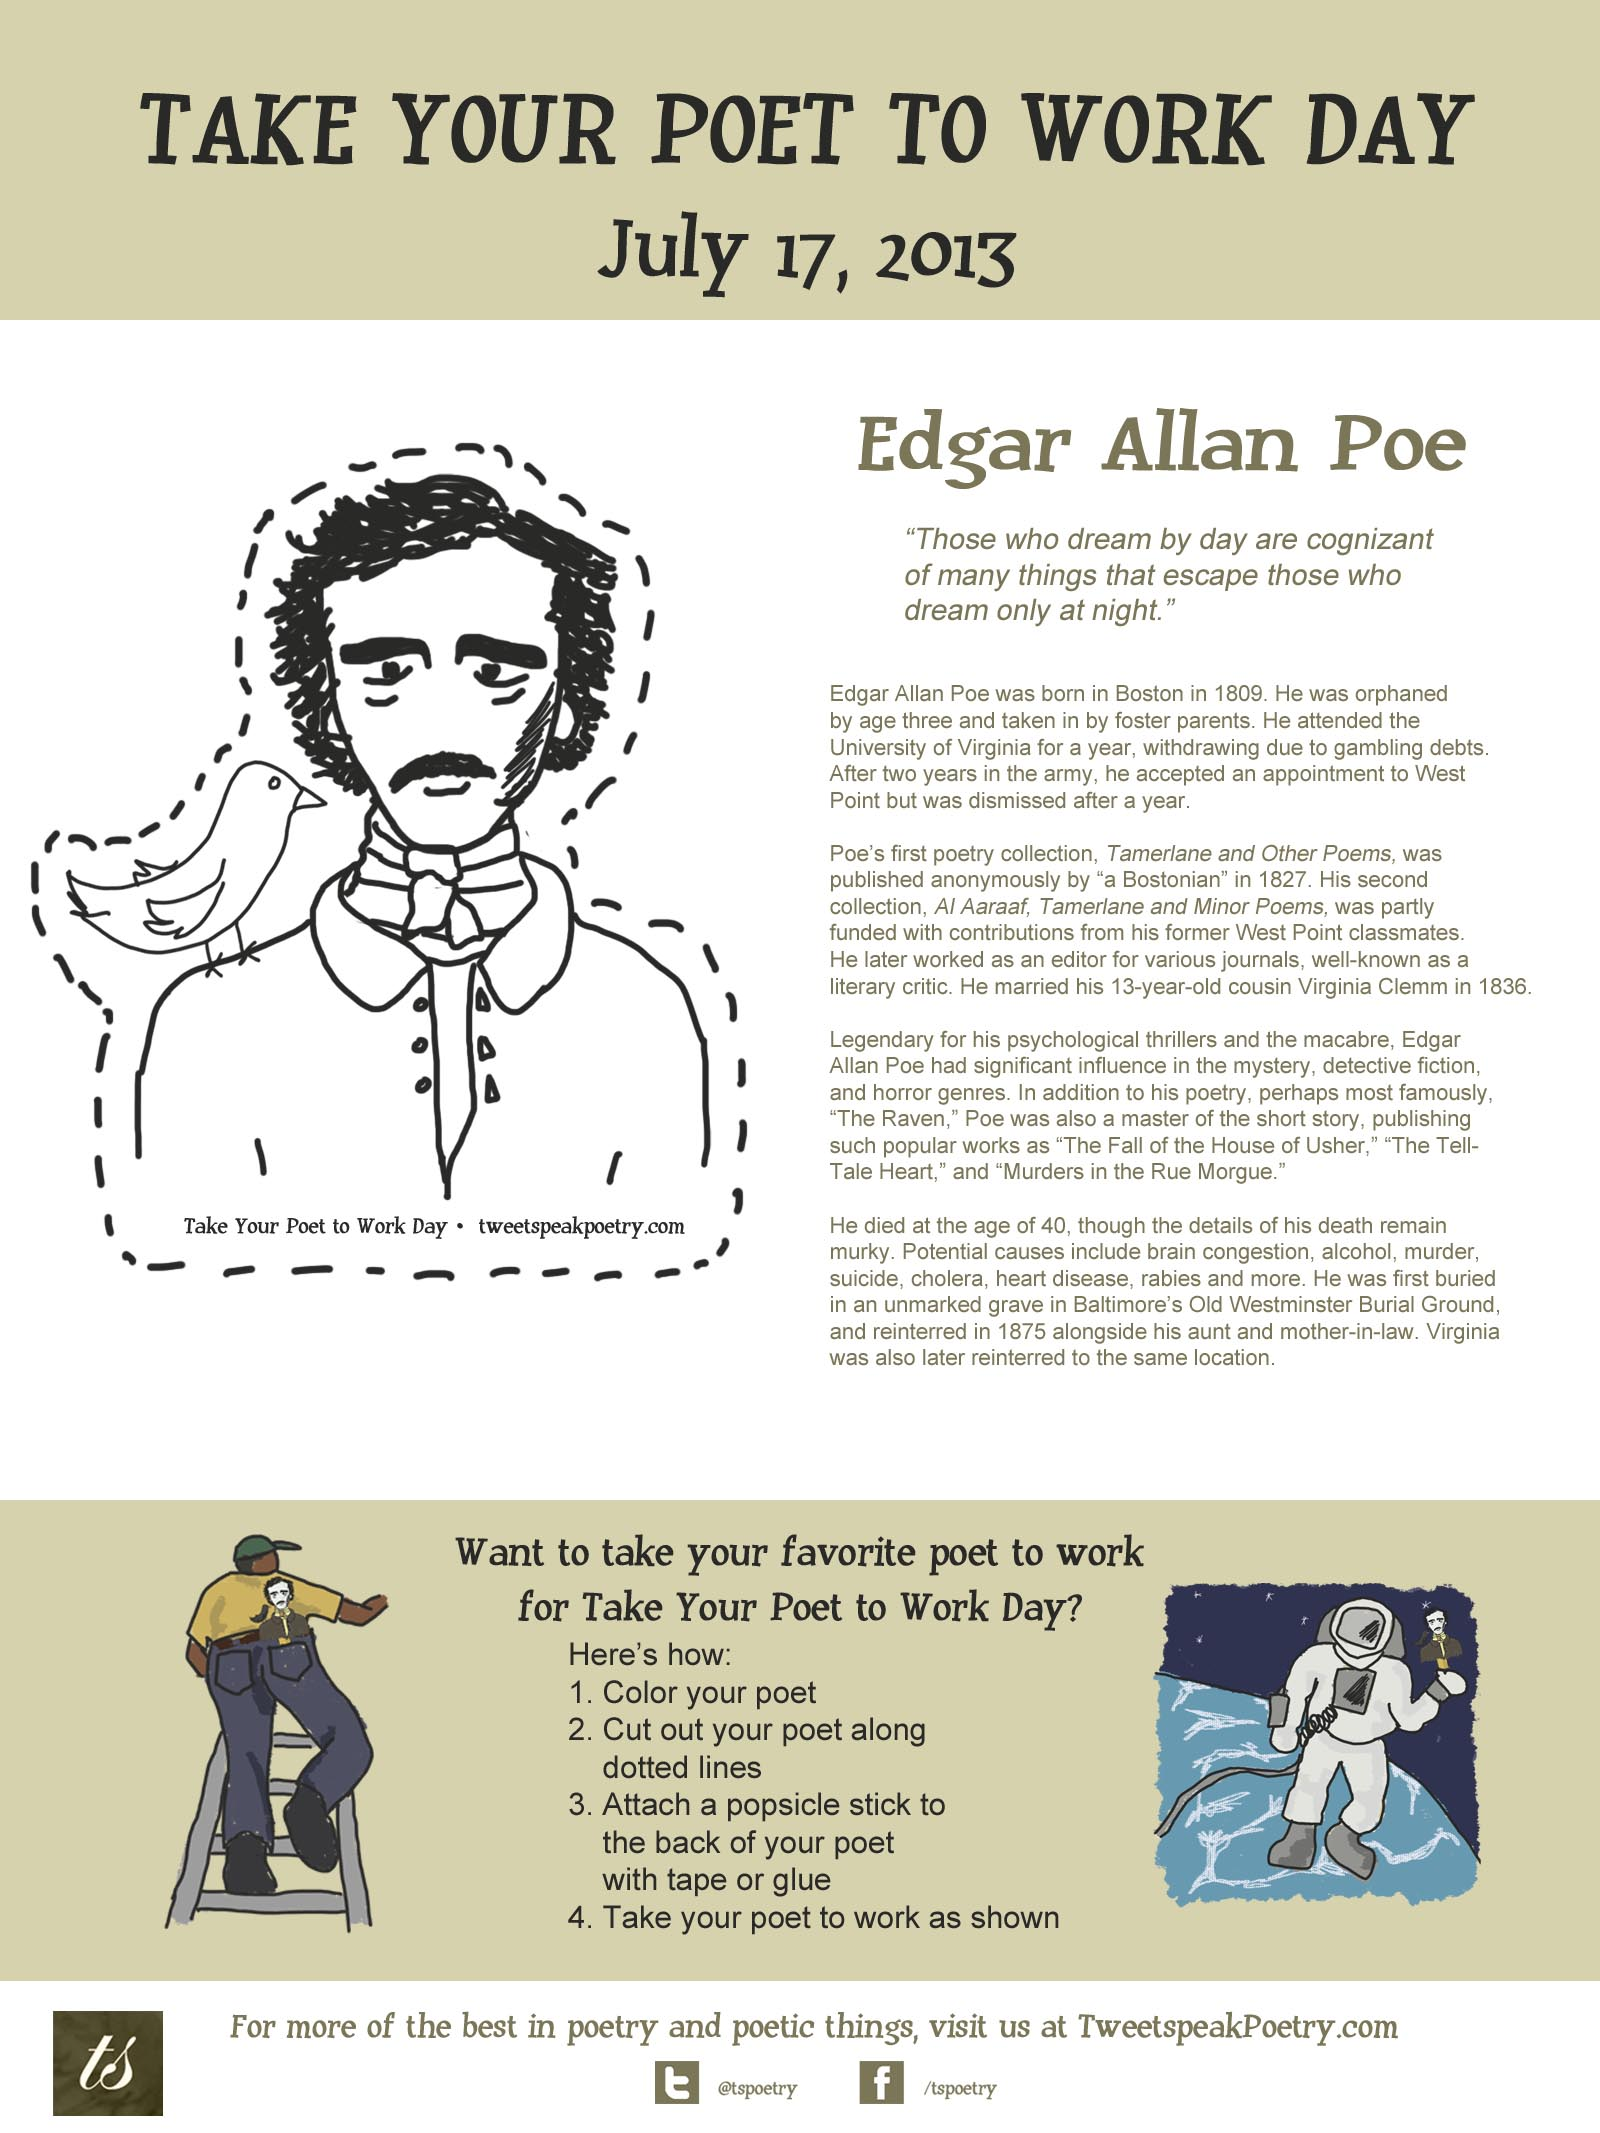 edgar allan poe life and death essay Check out our edgar allan poe essay sample and buy papers of such quality from our writers  after this short research, we can say that edgar allan poe's life was full of tragedy, fear, and misfortunes, which led him to alcohol addiction  bramsback, birgit (1970) the final illness and death of edgar allan poe: an attempt at.